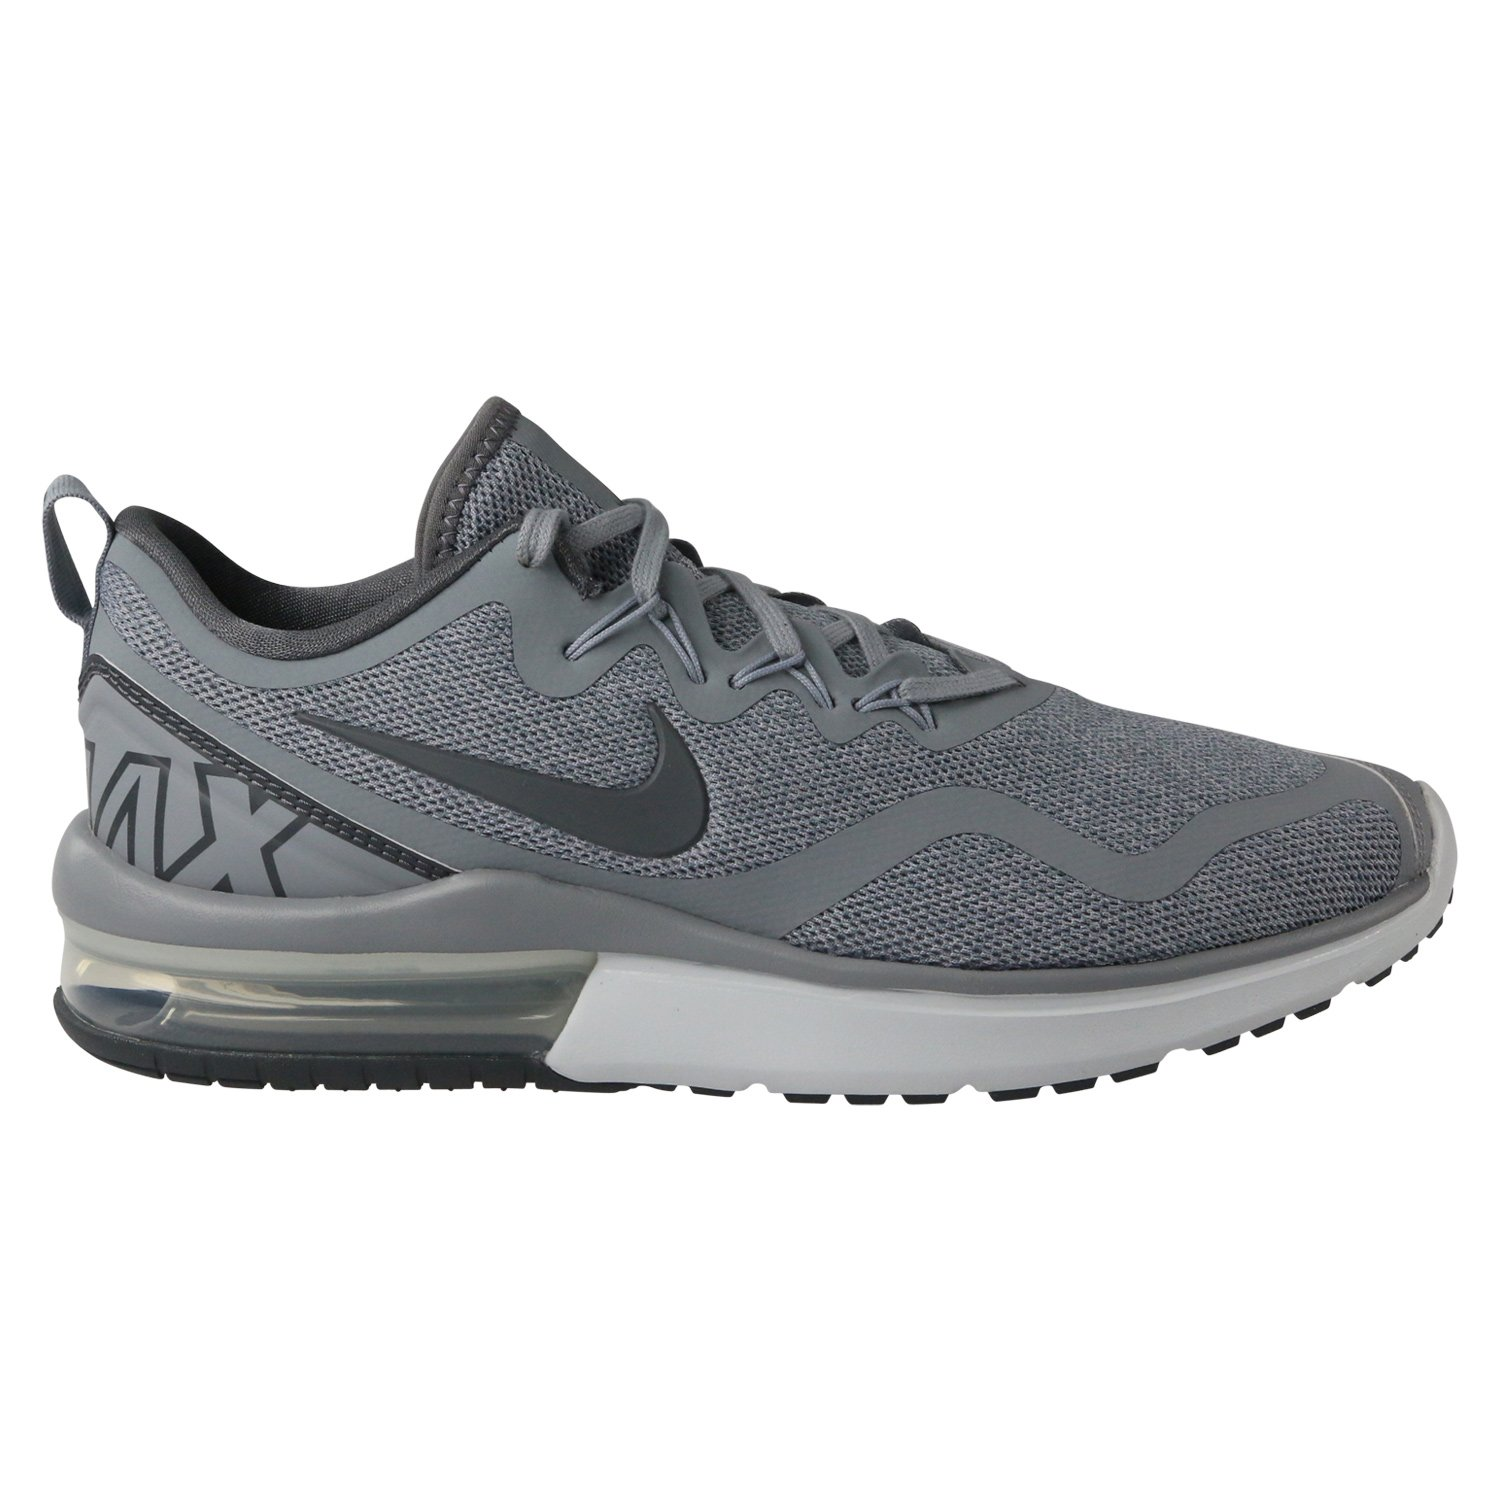 Nike Air Max Fury, Chaussures de Running Homme, Gris (Wolf